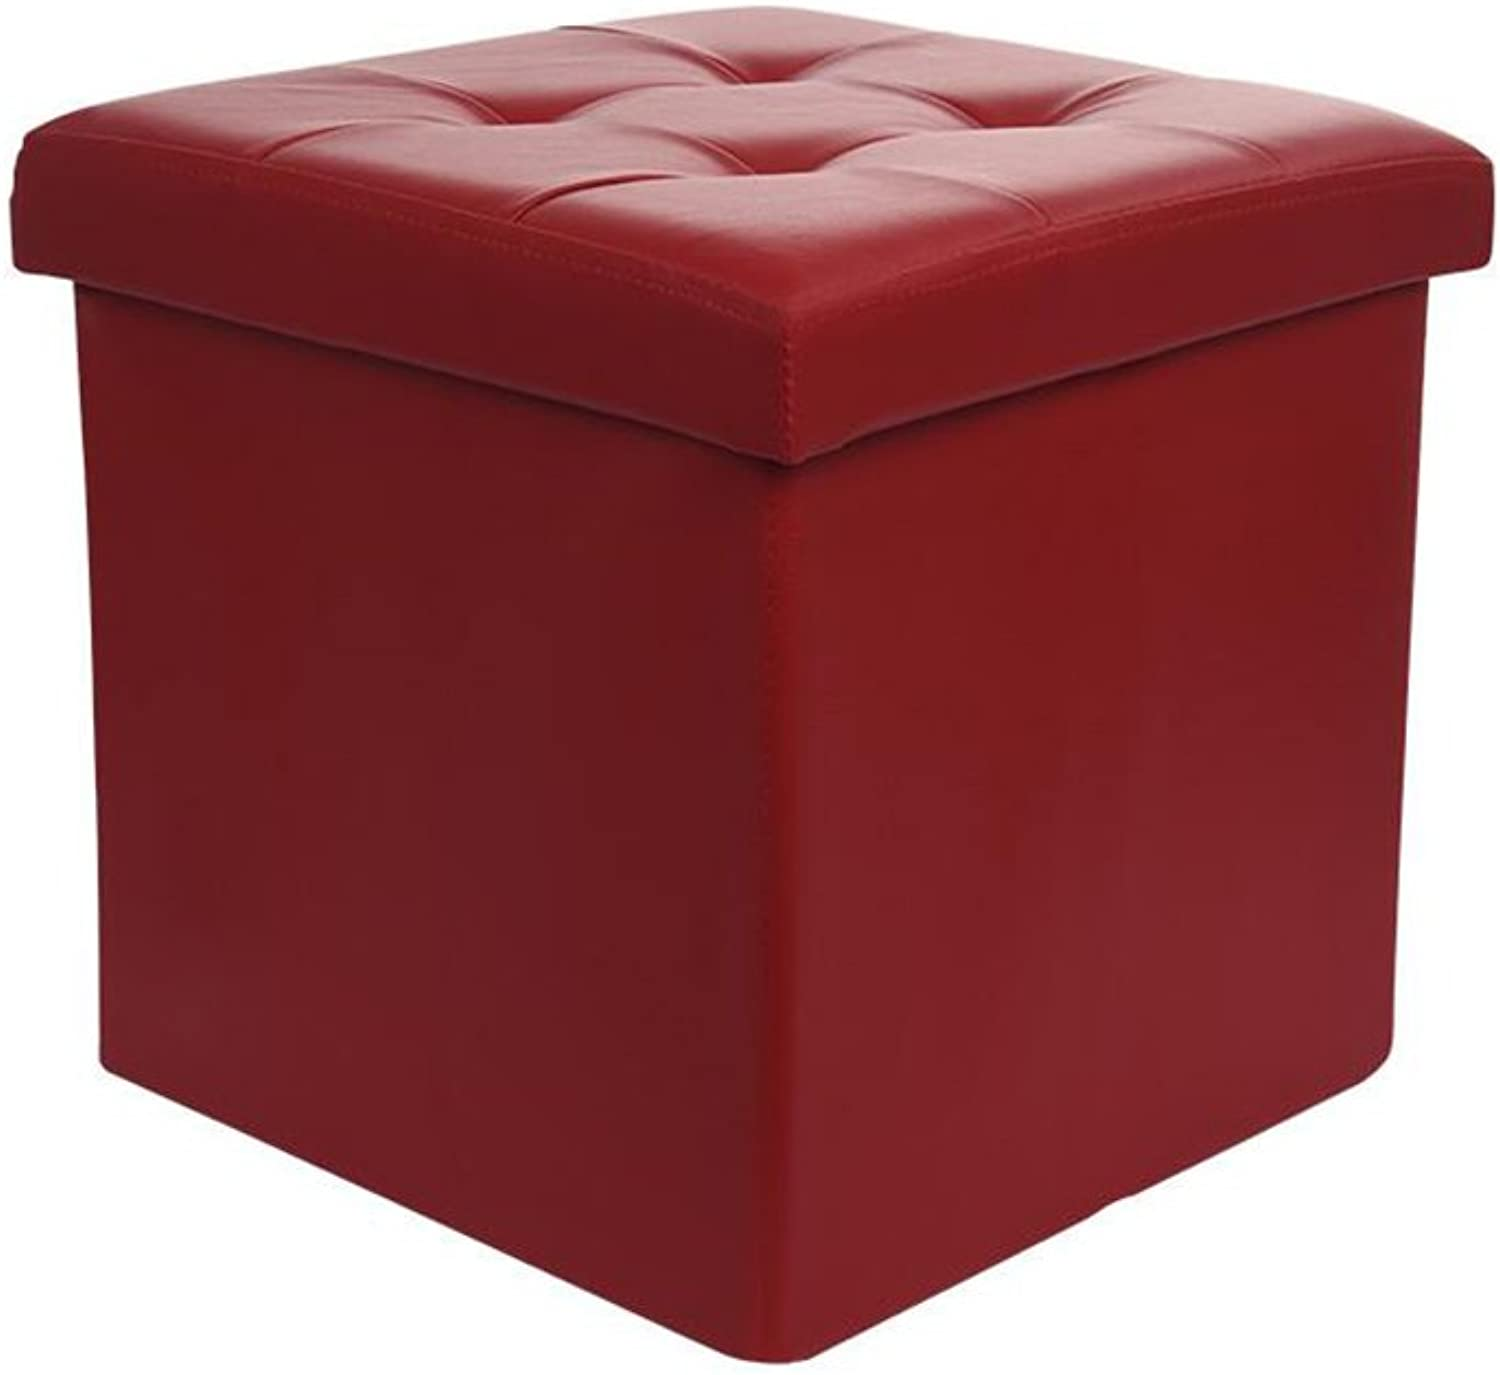 Sun Sofa Stool Storage Box Storage Stool Multifunction shoes Stool Fitting Room Bearing 200kg,55L (color   RED)